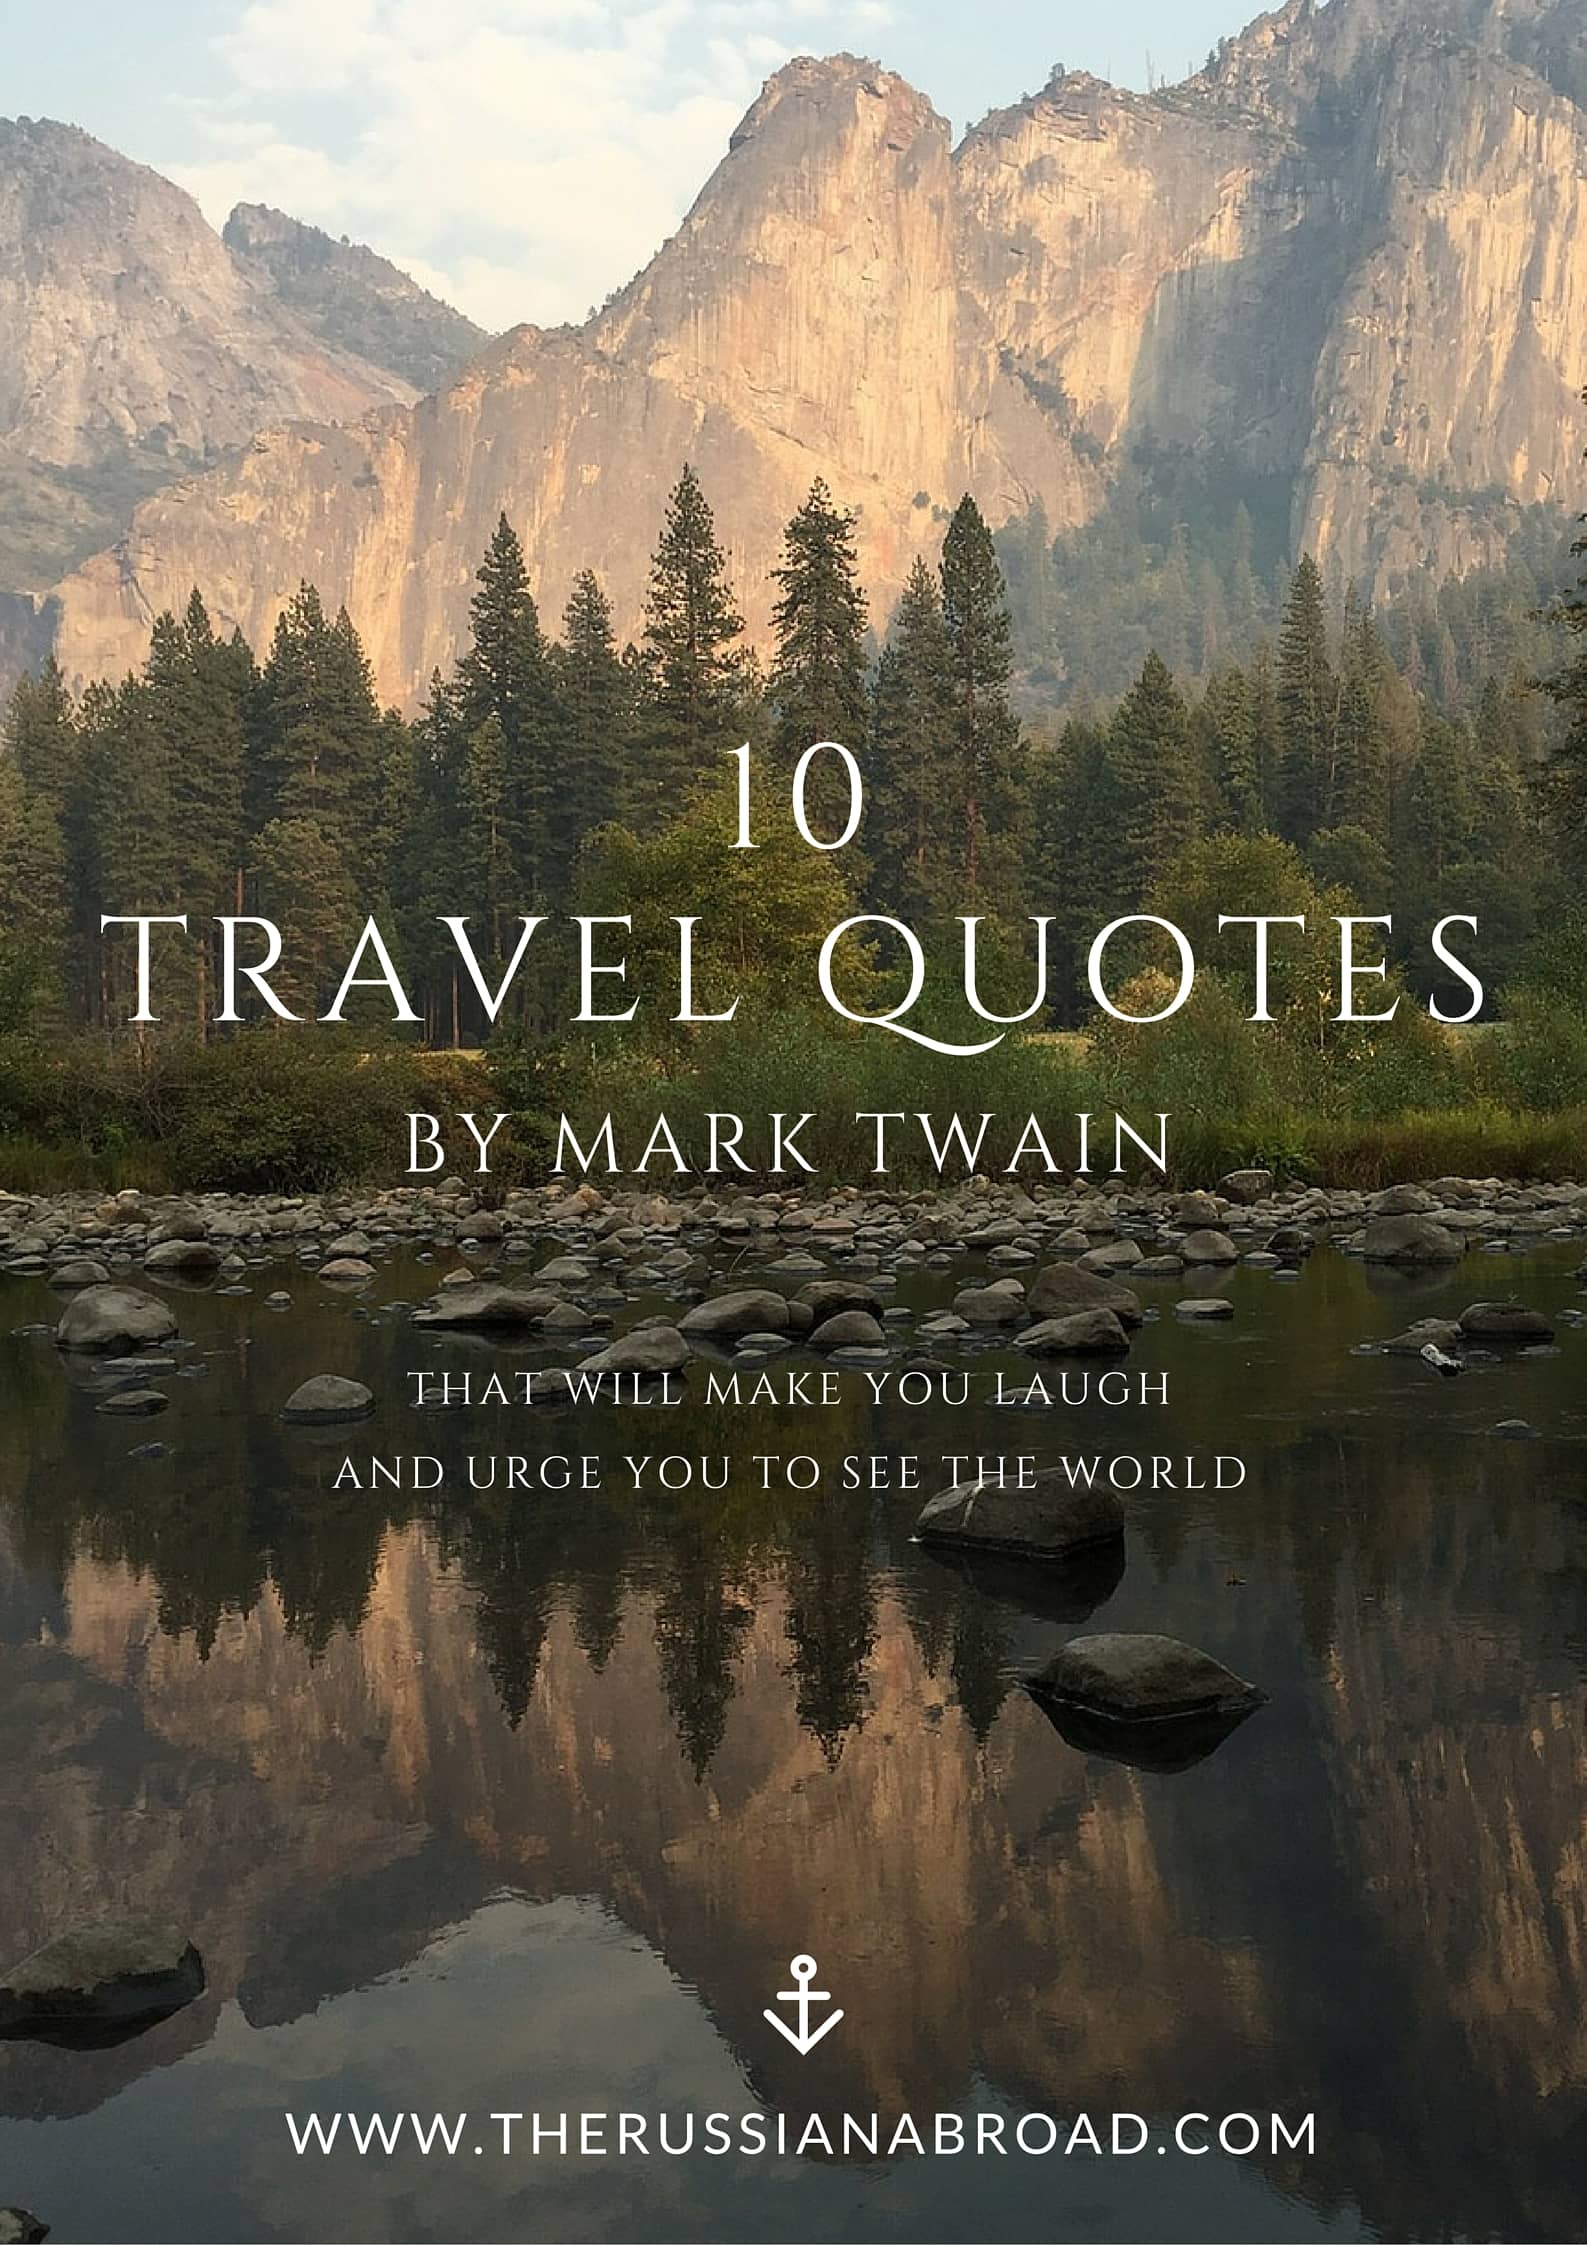 10 Witty Travel Quotes by Mark Twain — The Russian Abroad